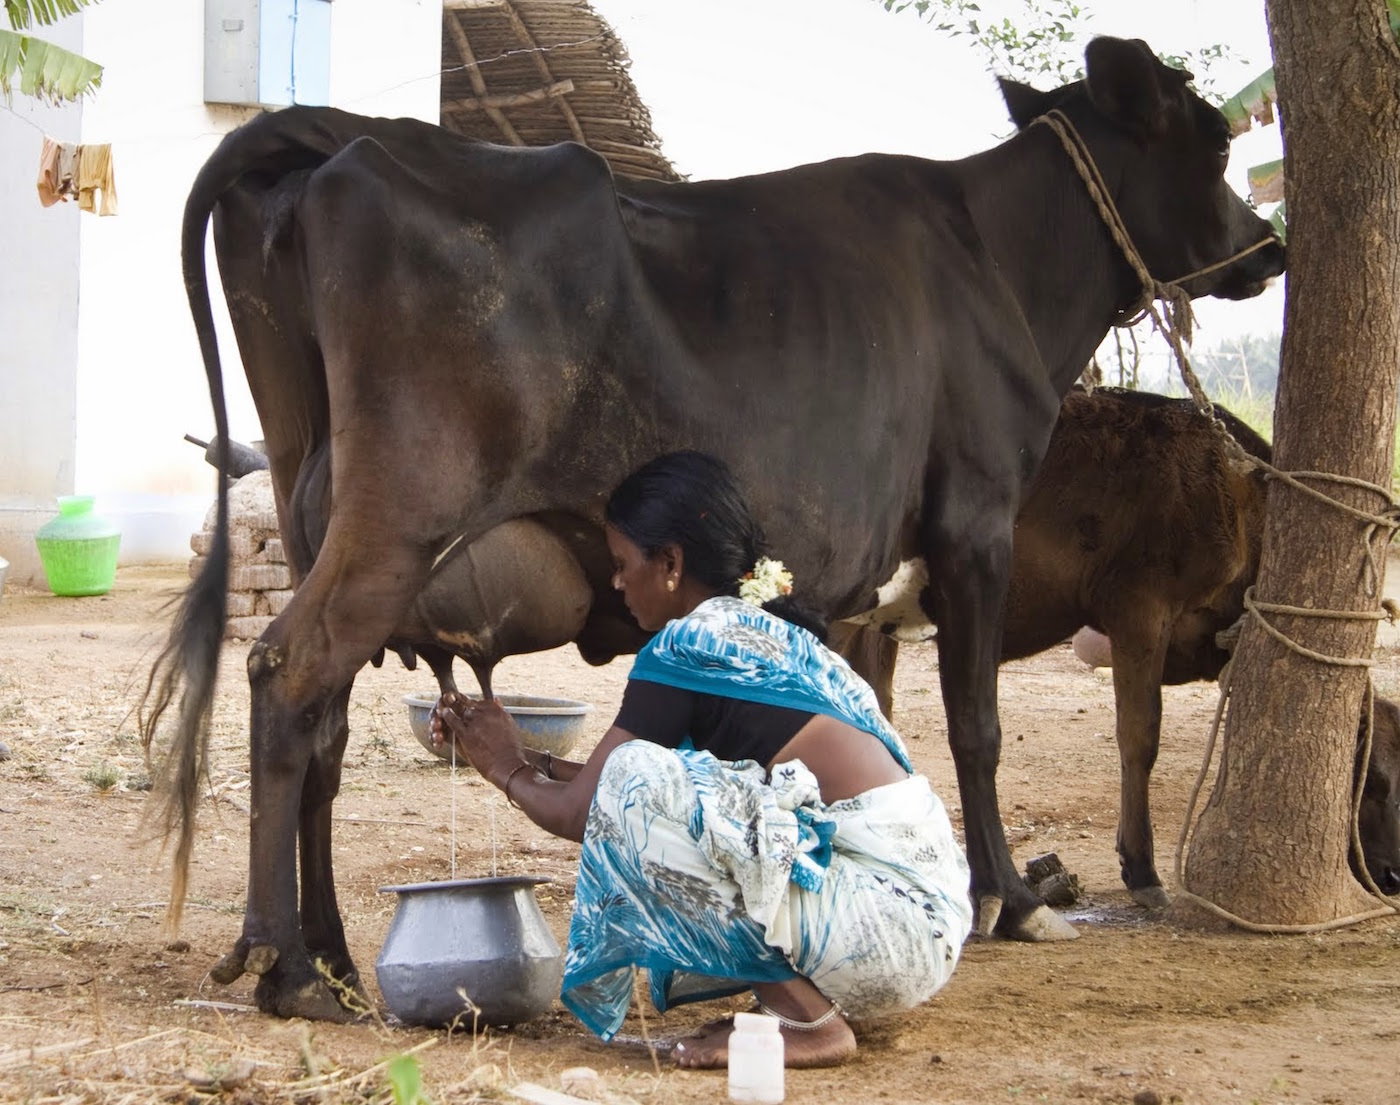 A woman milks a cow in southeastern India. Photo courtesy of Sorin Grama and Lance Casey.